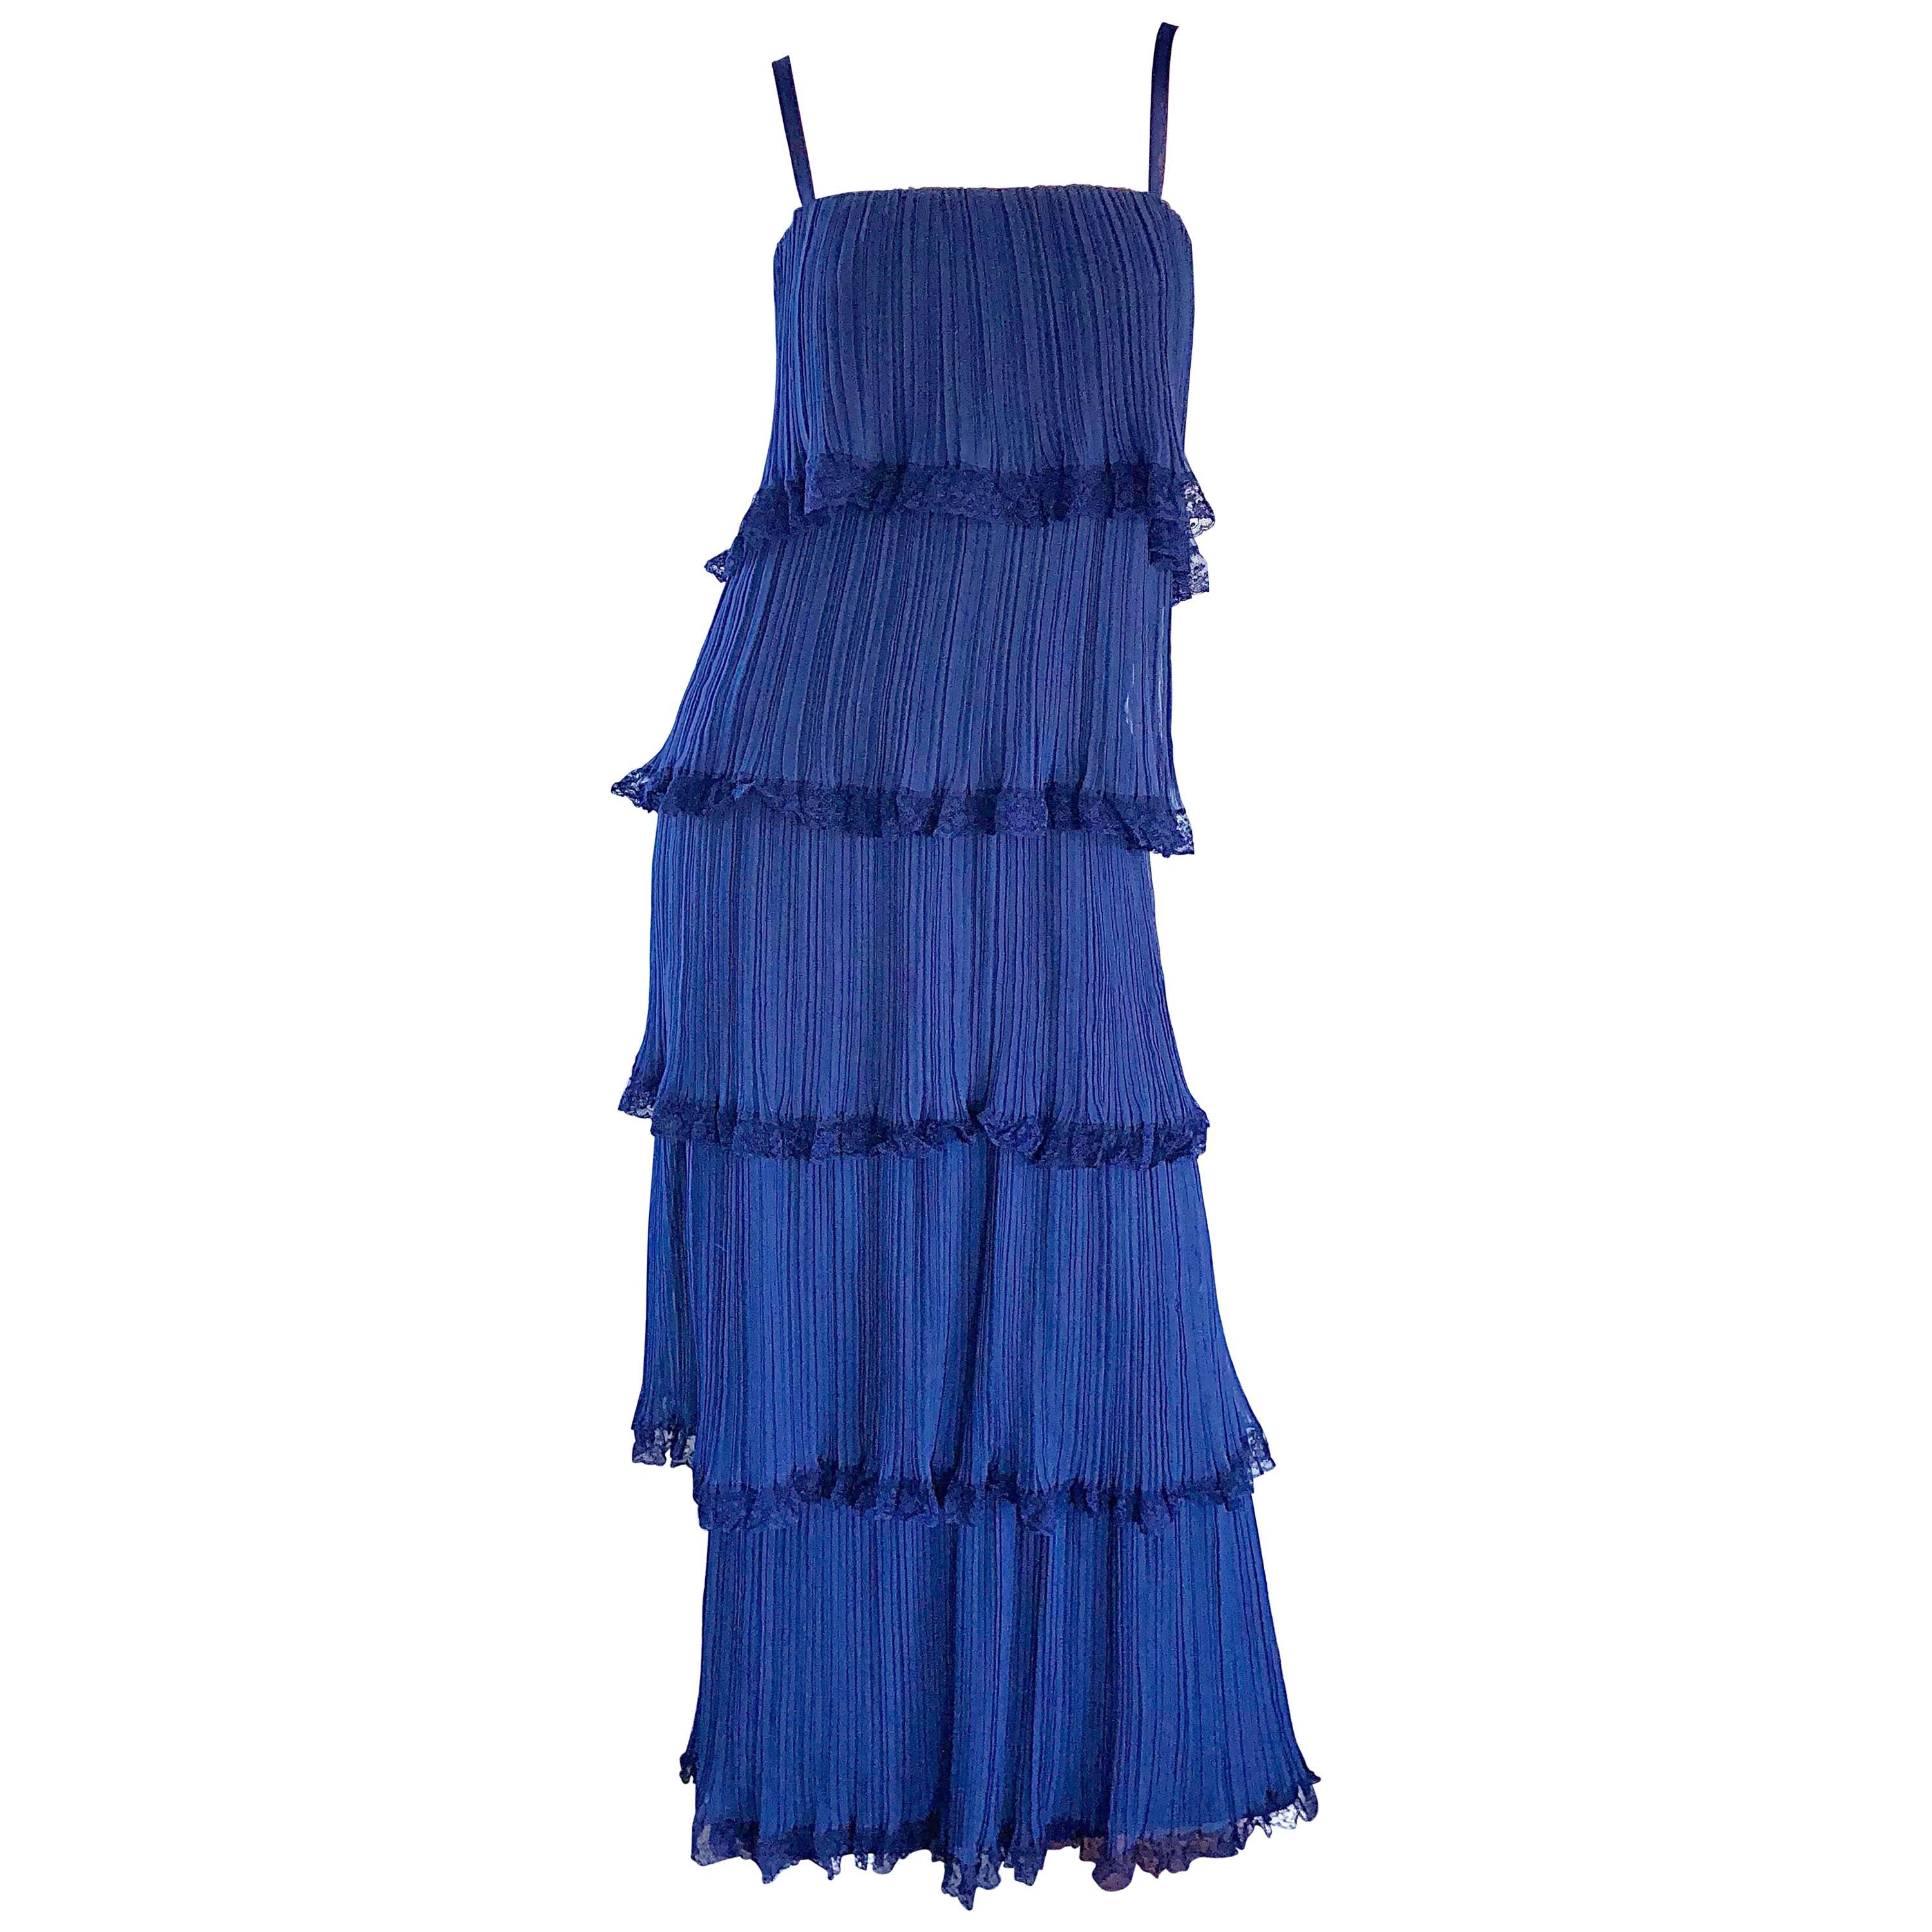 Bob Bugnand 1960s Large Navy Blue Silk Chiffon Tiered 60s Vintage Evening Gown